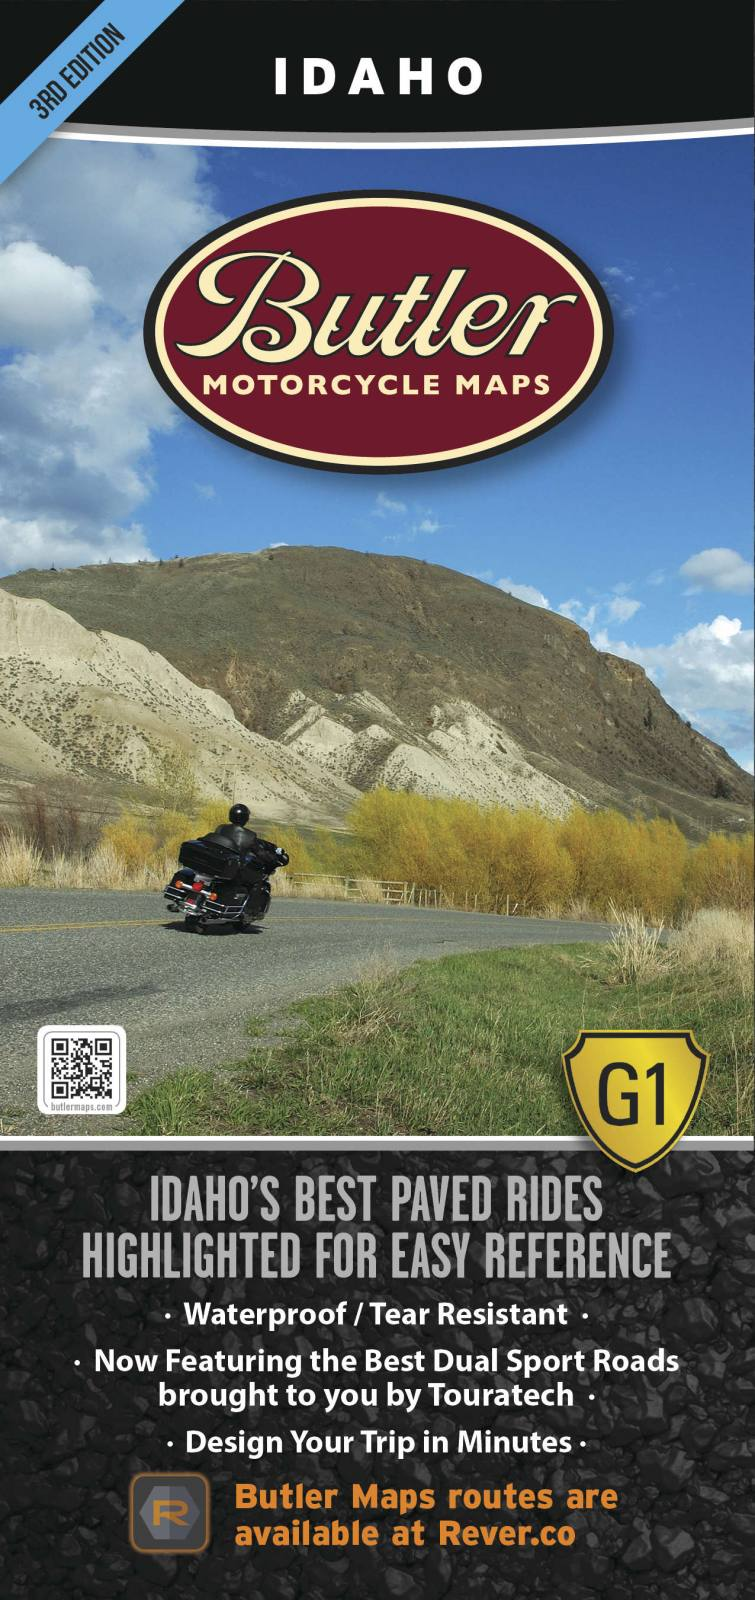 BUTLER MAPS G1 Series Maps Idaho MP-106